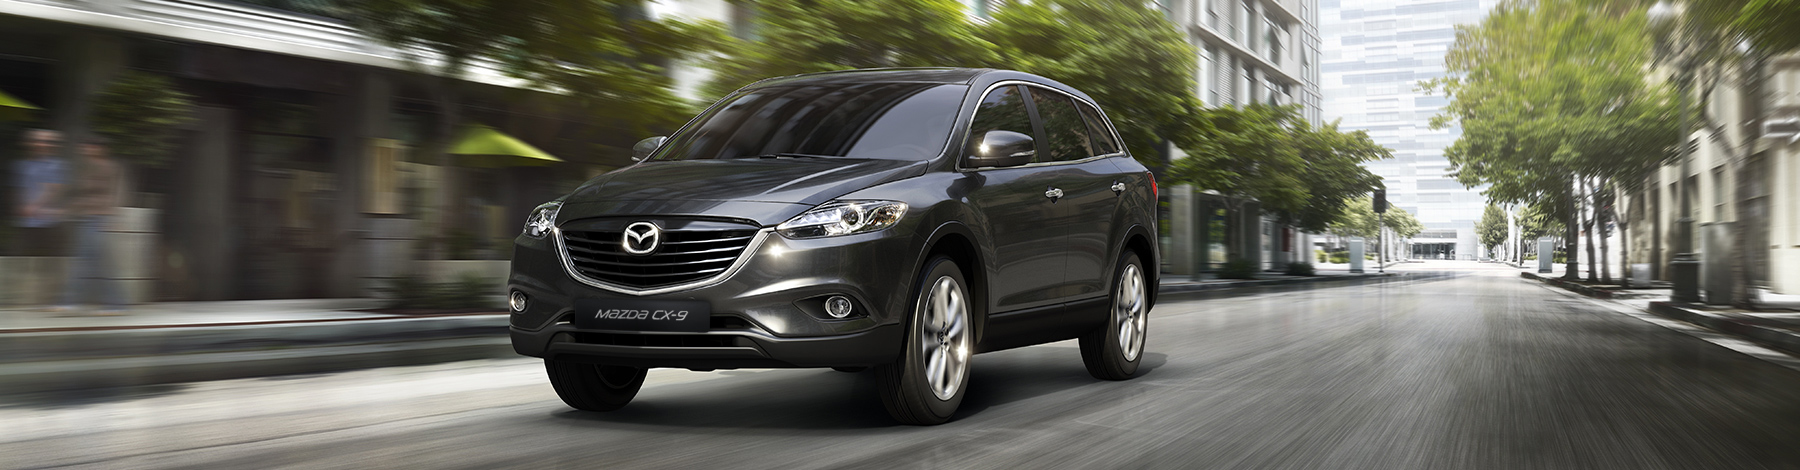 mazda wallpaper (Mazda CX-9)